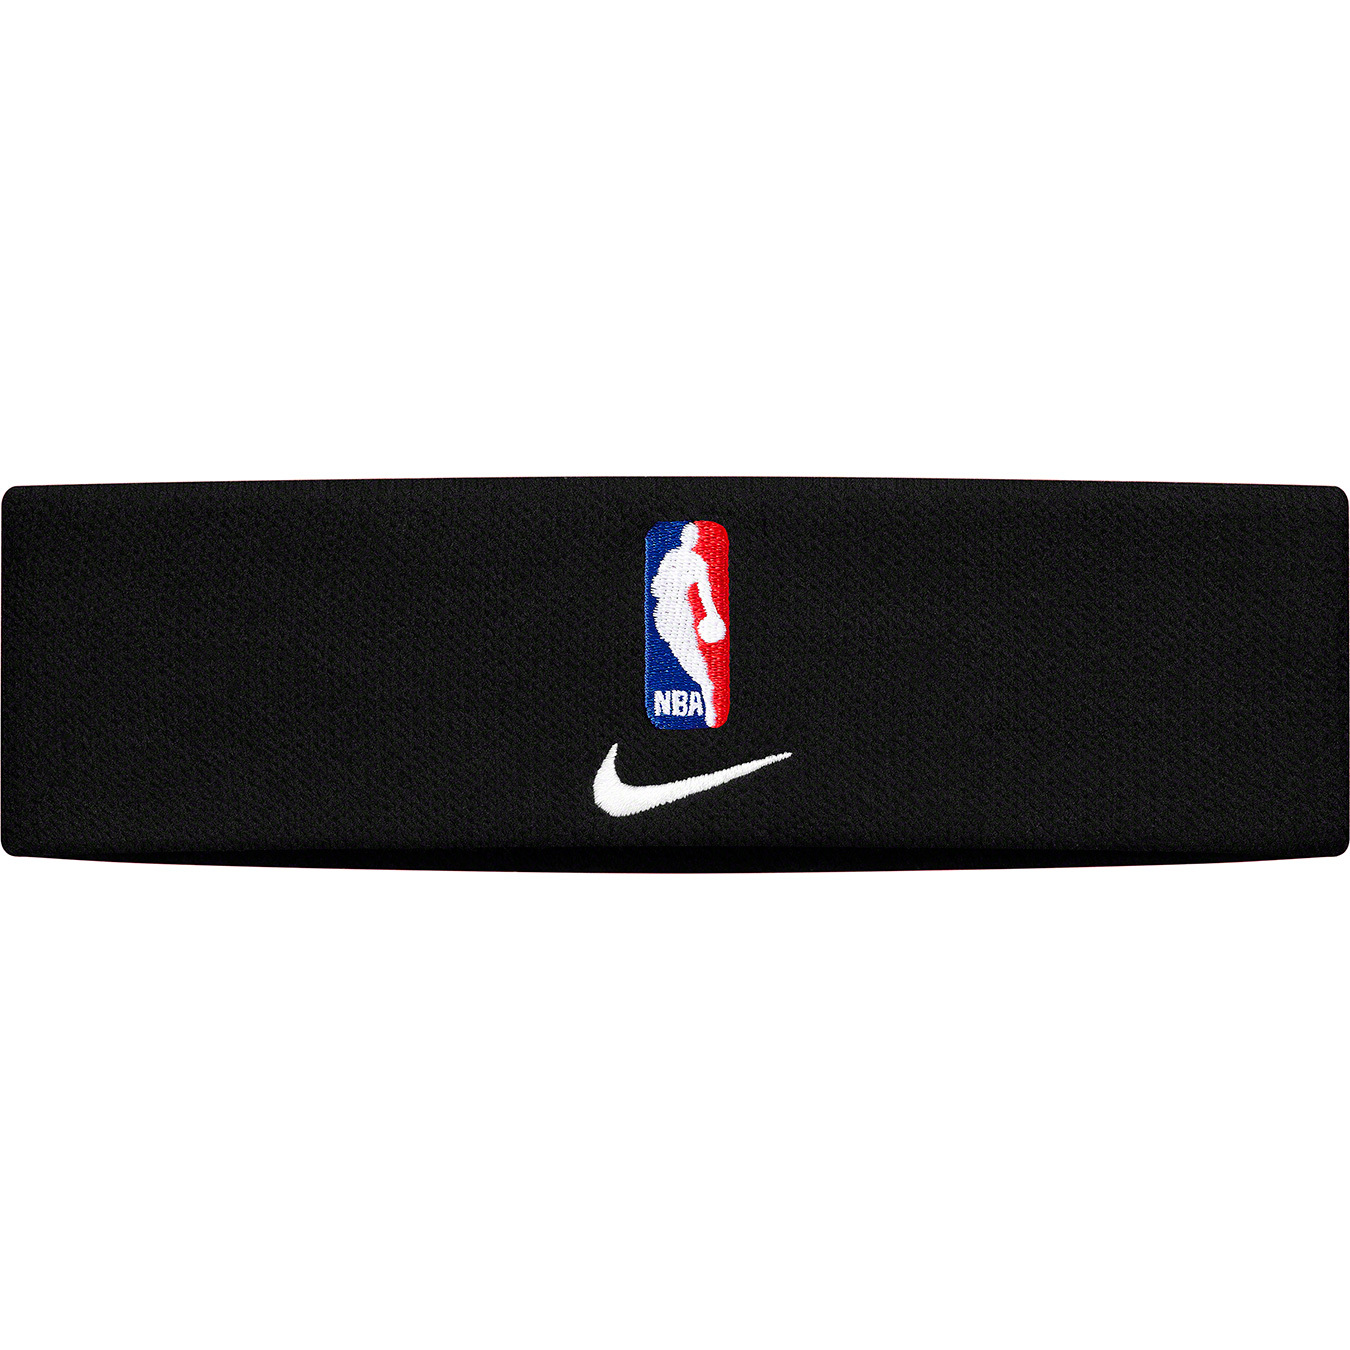 supreme-19ss-spring-summer-supreme-nike-nba-headband